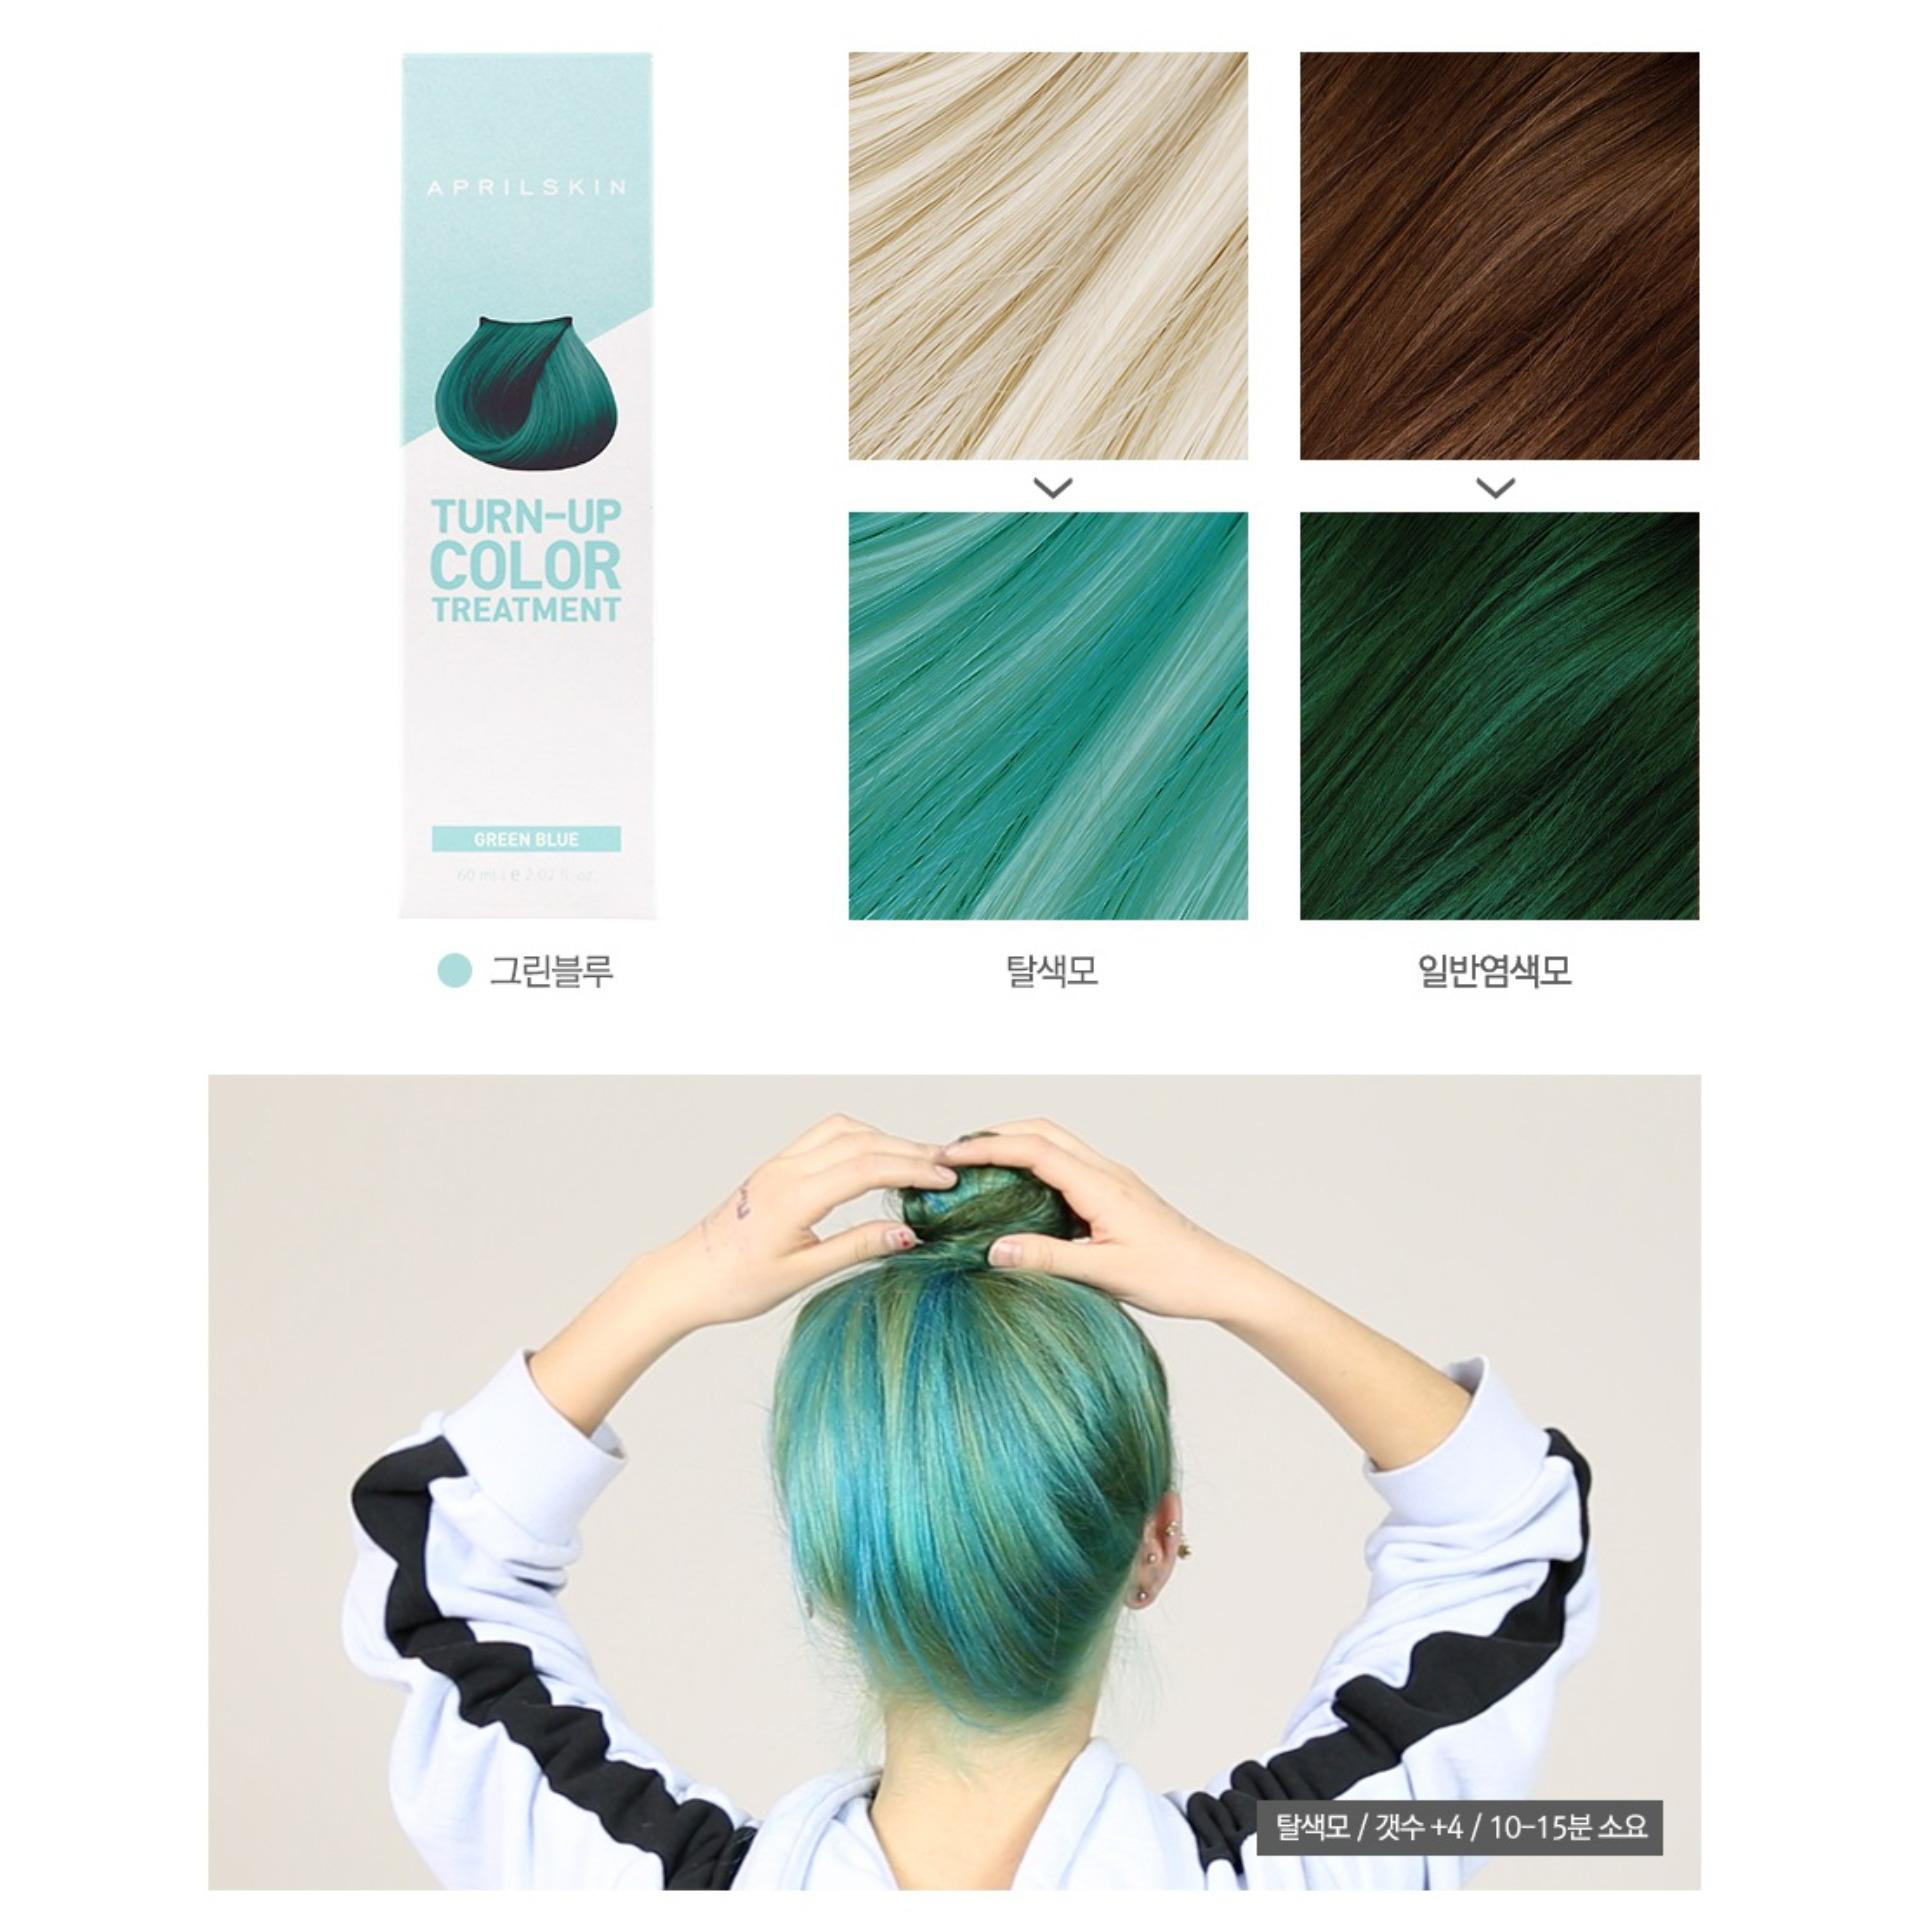 APRIL SKIN TURN-UP COLOR TREATMENT - GREEN BLUE